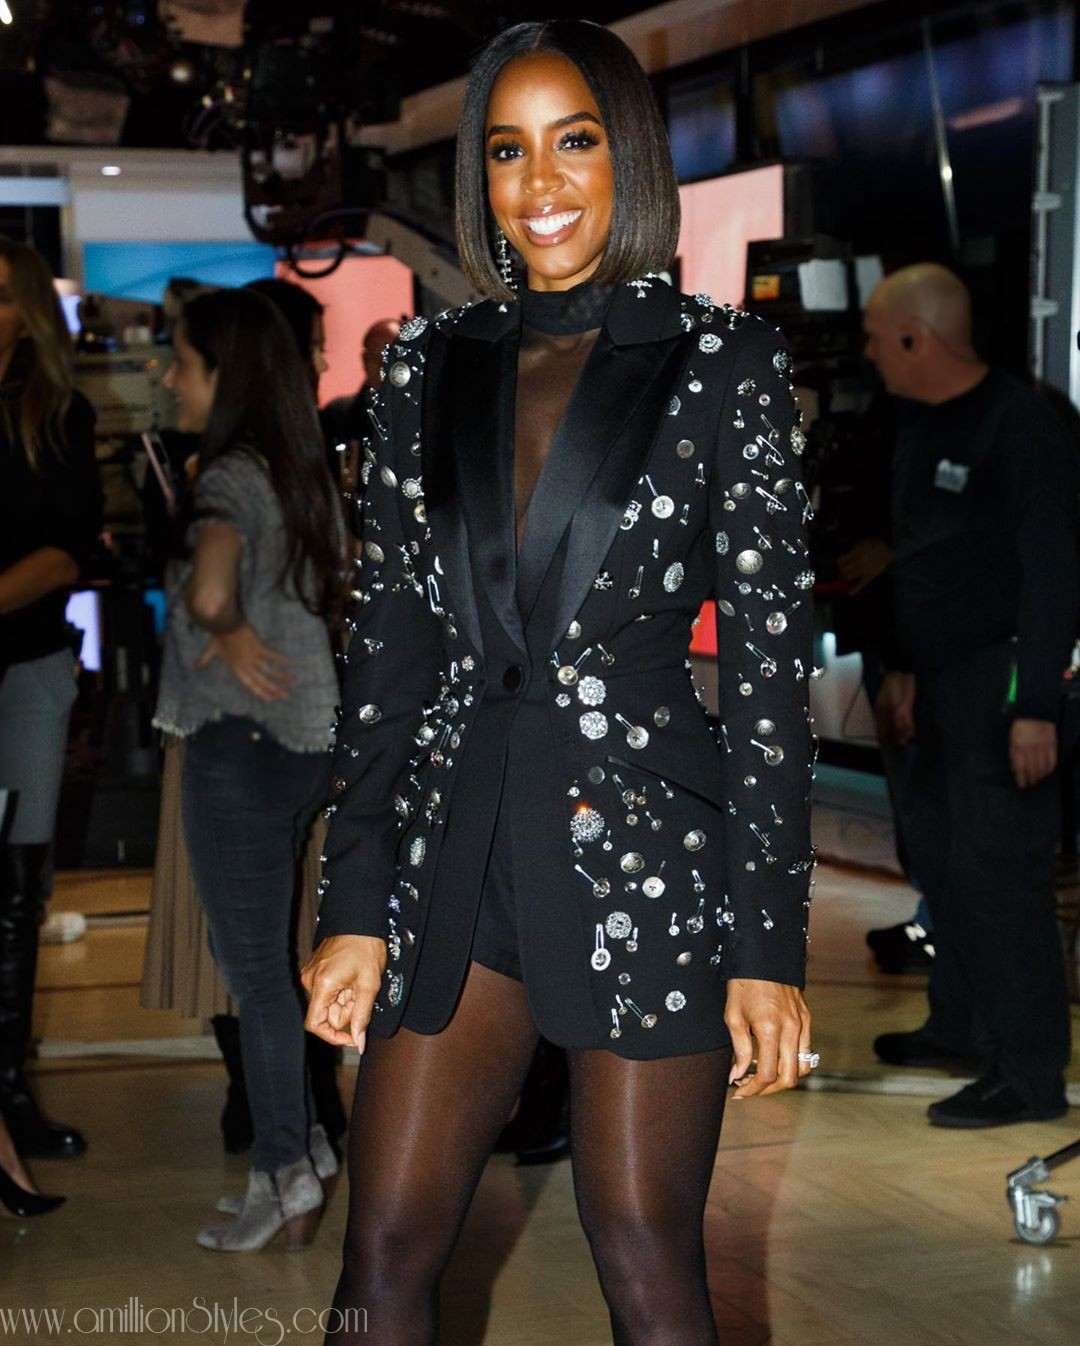 Kelly Rowland Snatched Wigs In Embellished Tuxedo Jacket